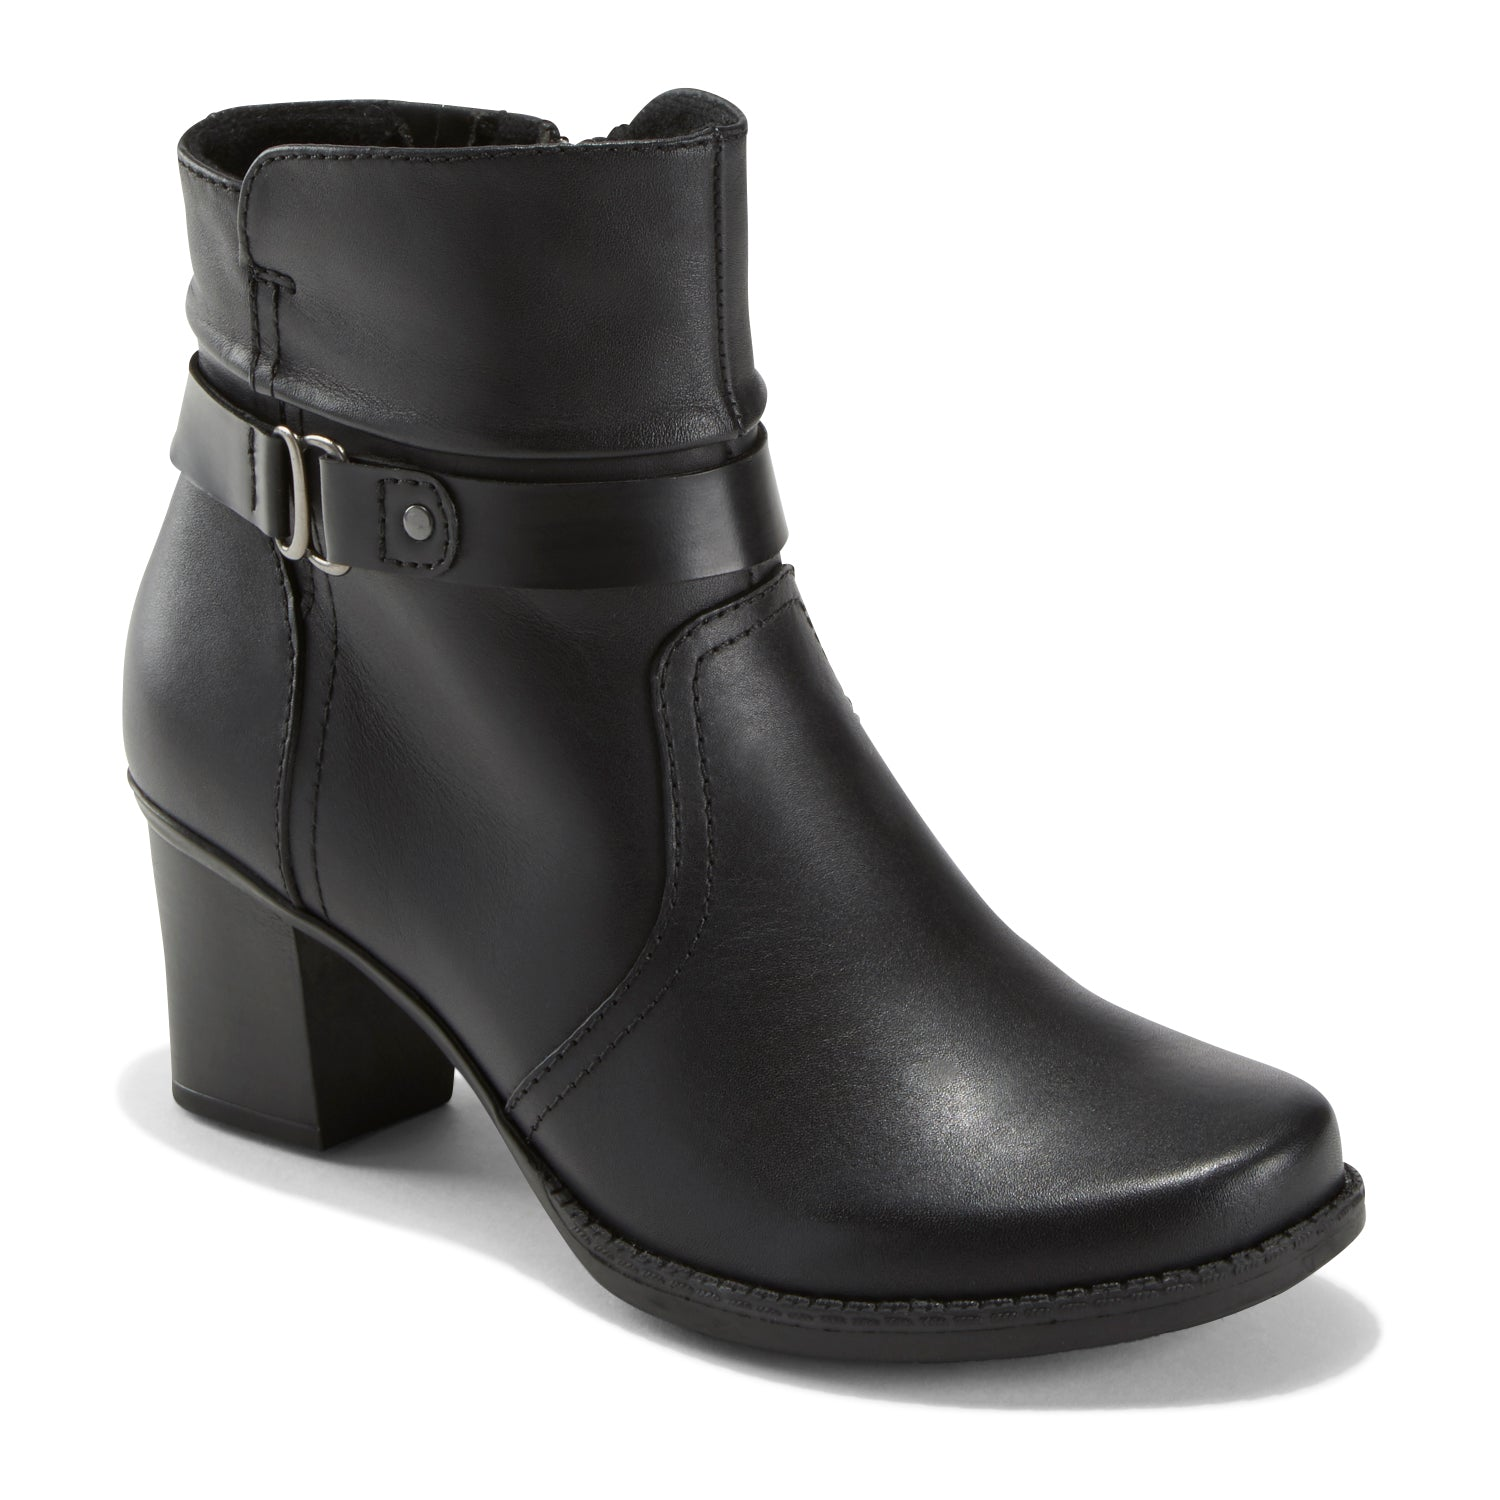 Western and moto influences combine to create a bootie with a sophisticated edge. It\\\'s as comfortable as it is eye catching.